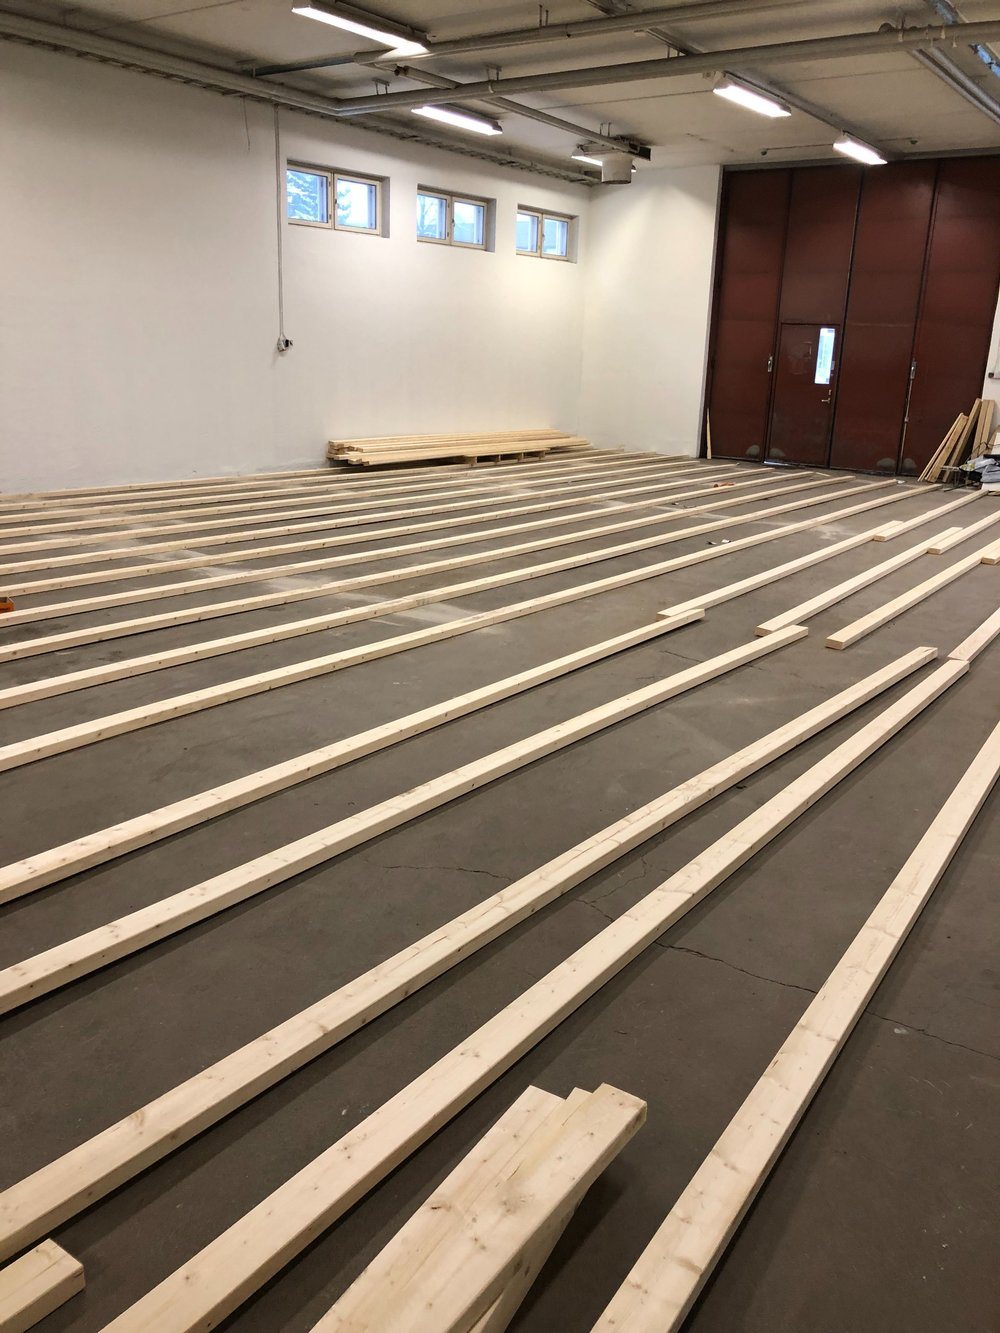 Raised floor being built, this is going to be awesome!